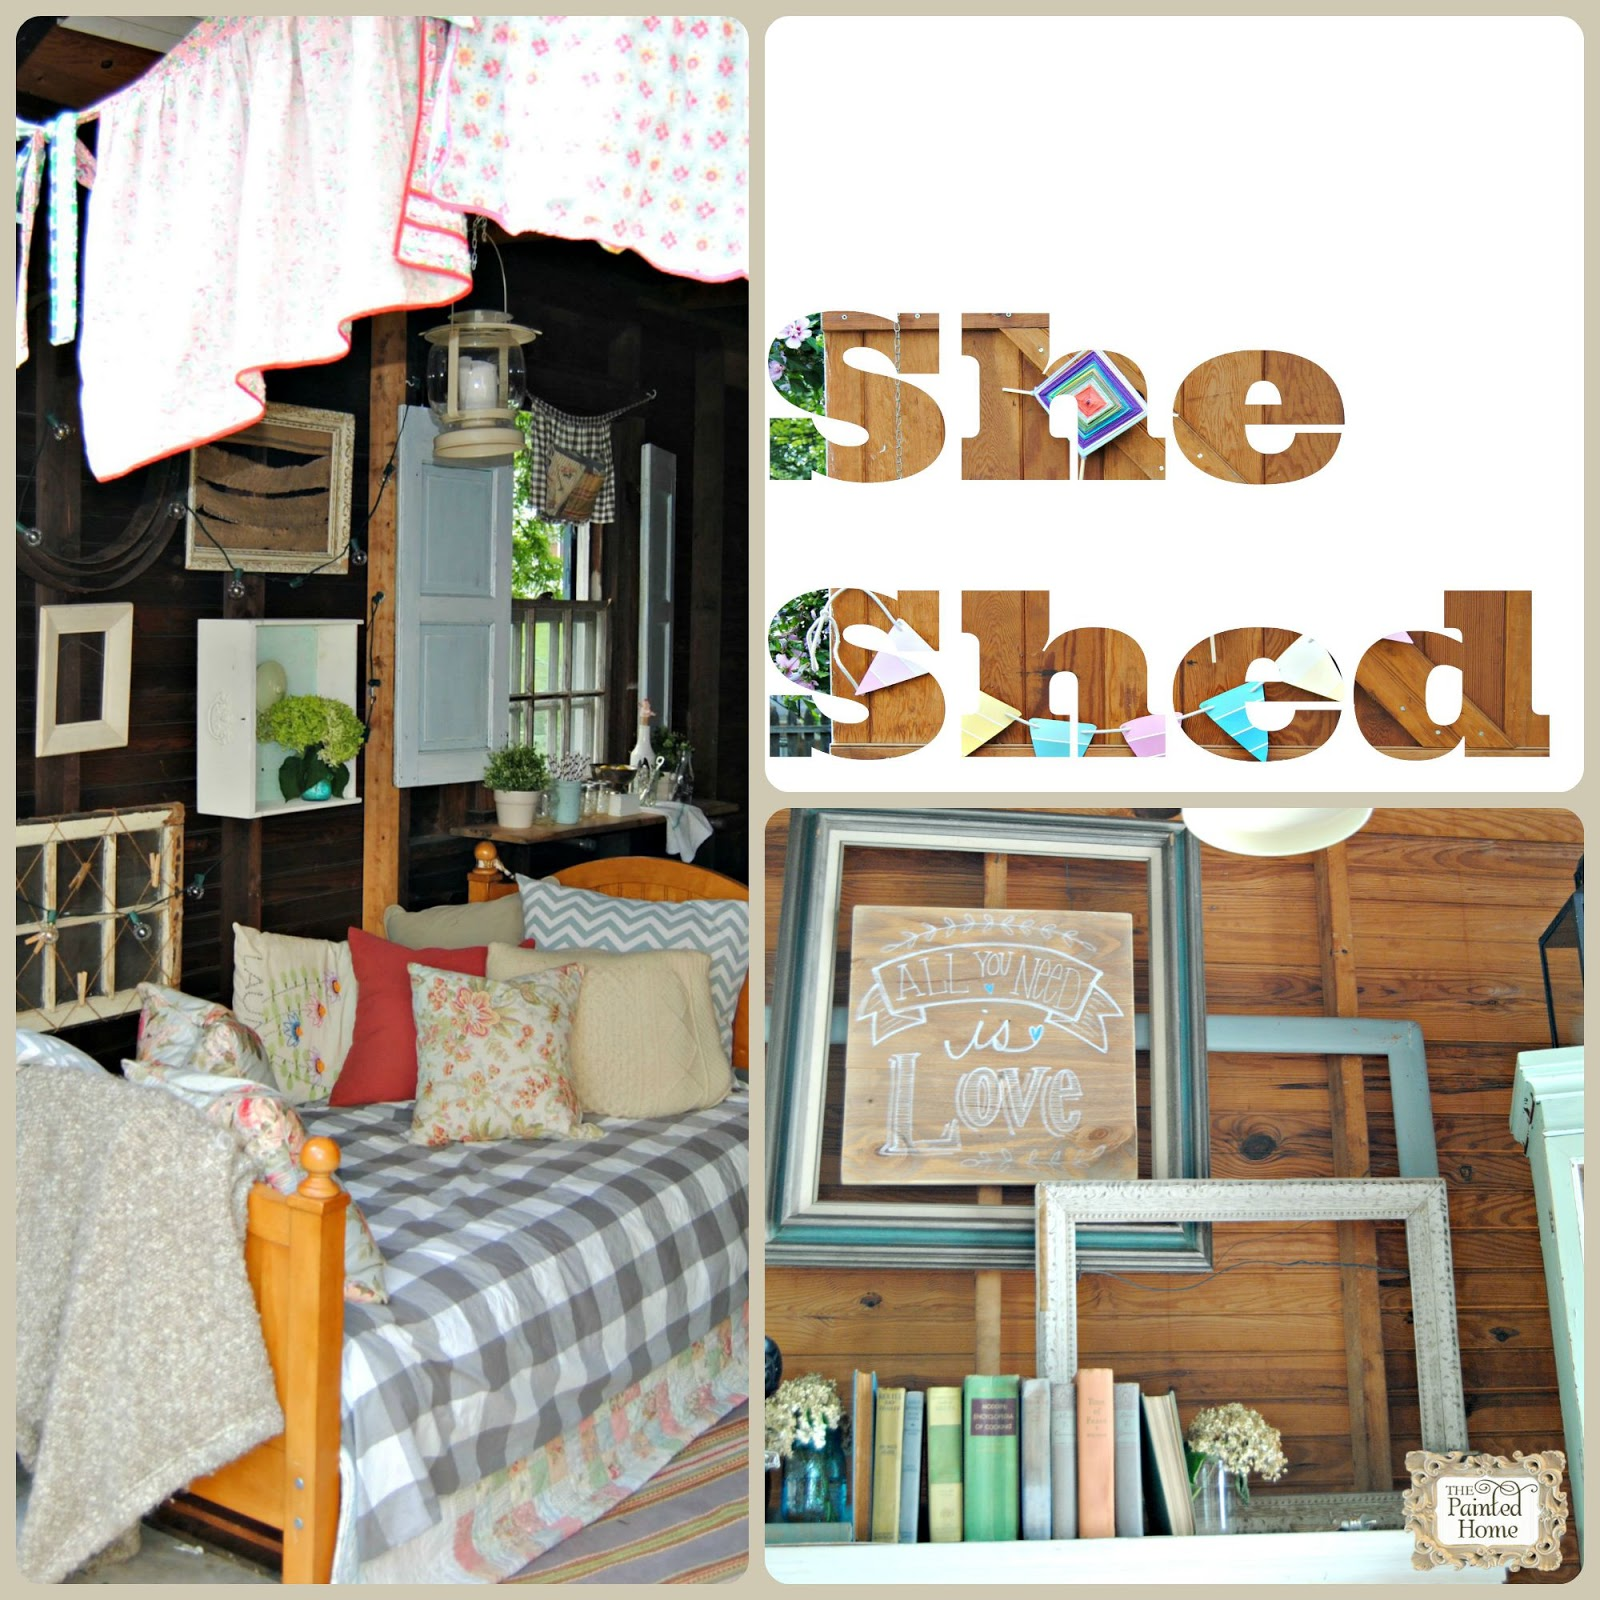 The Making of a She Shed